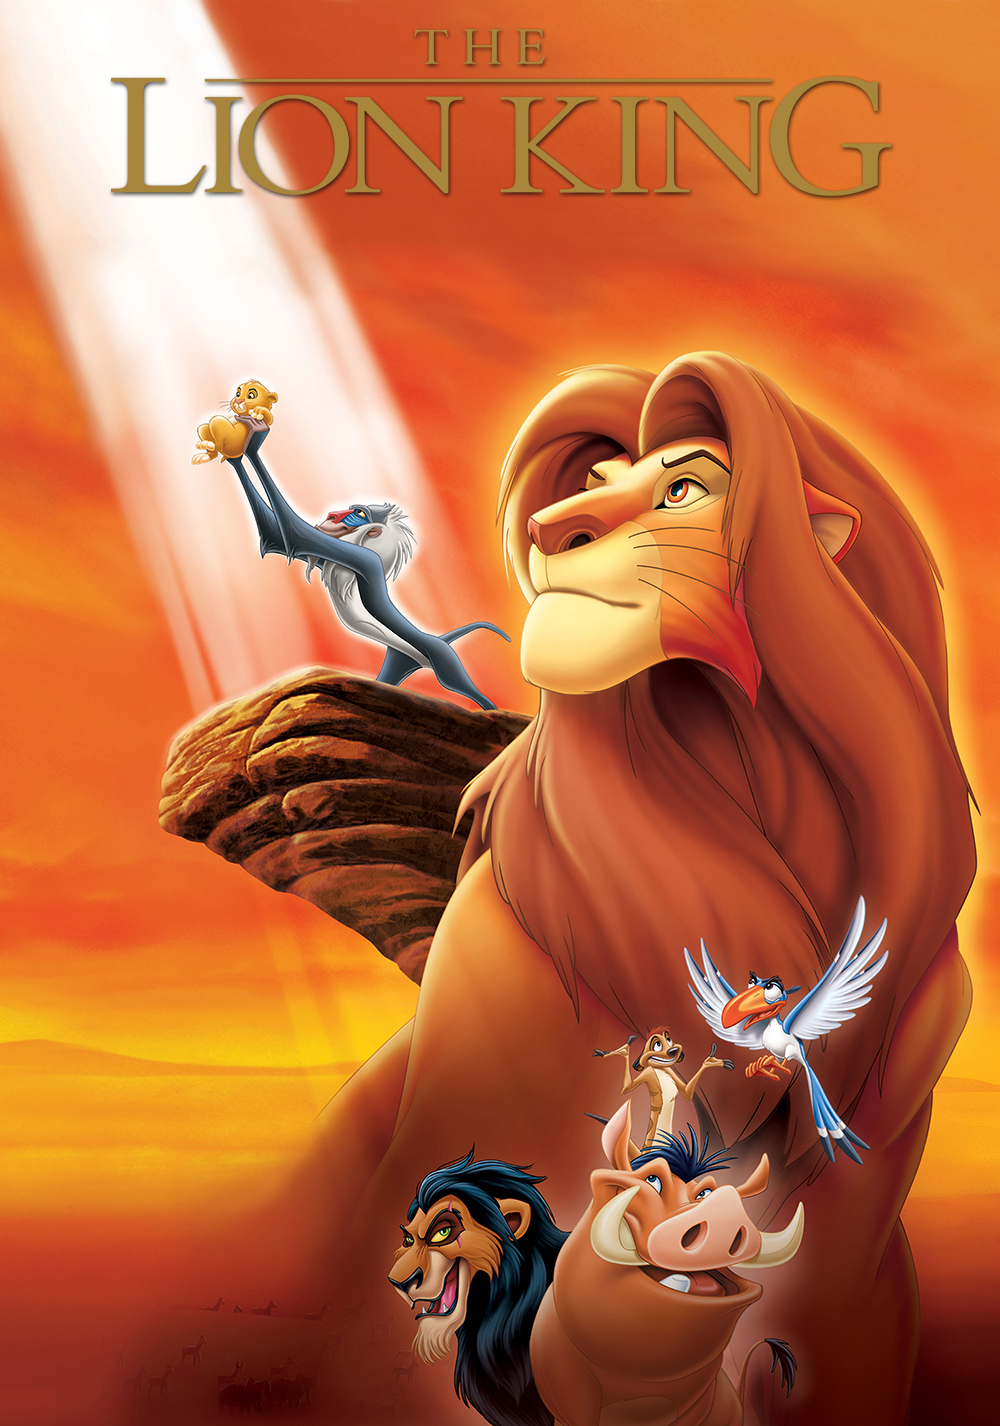 The Lion King (1994; animated)